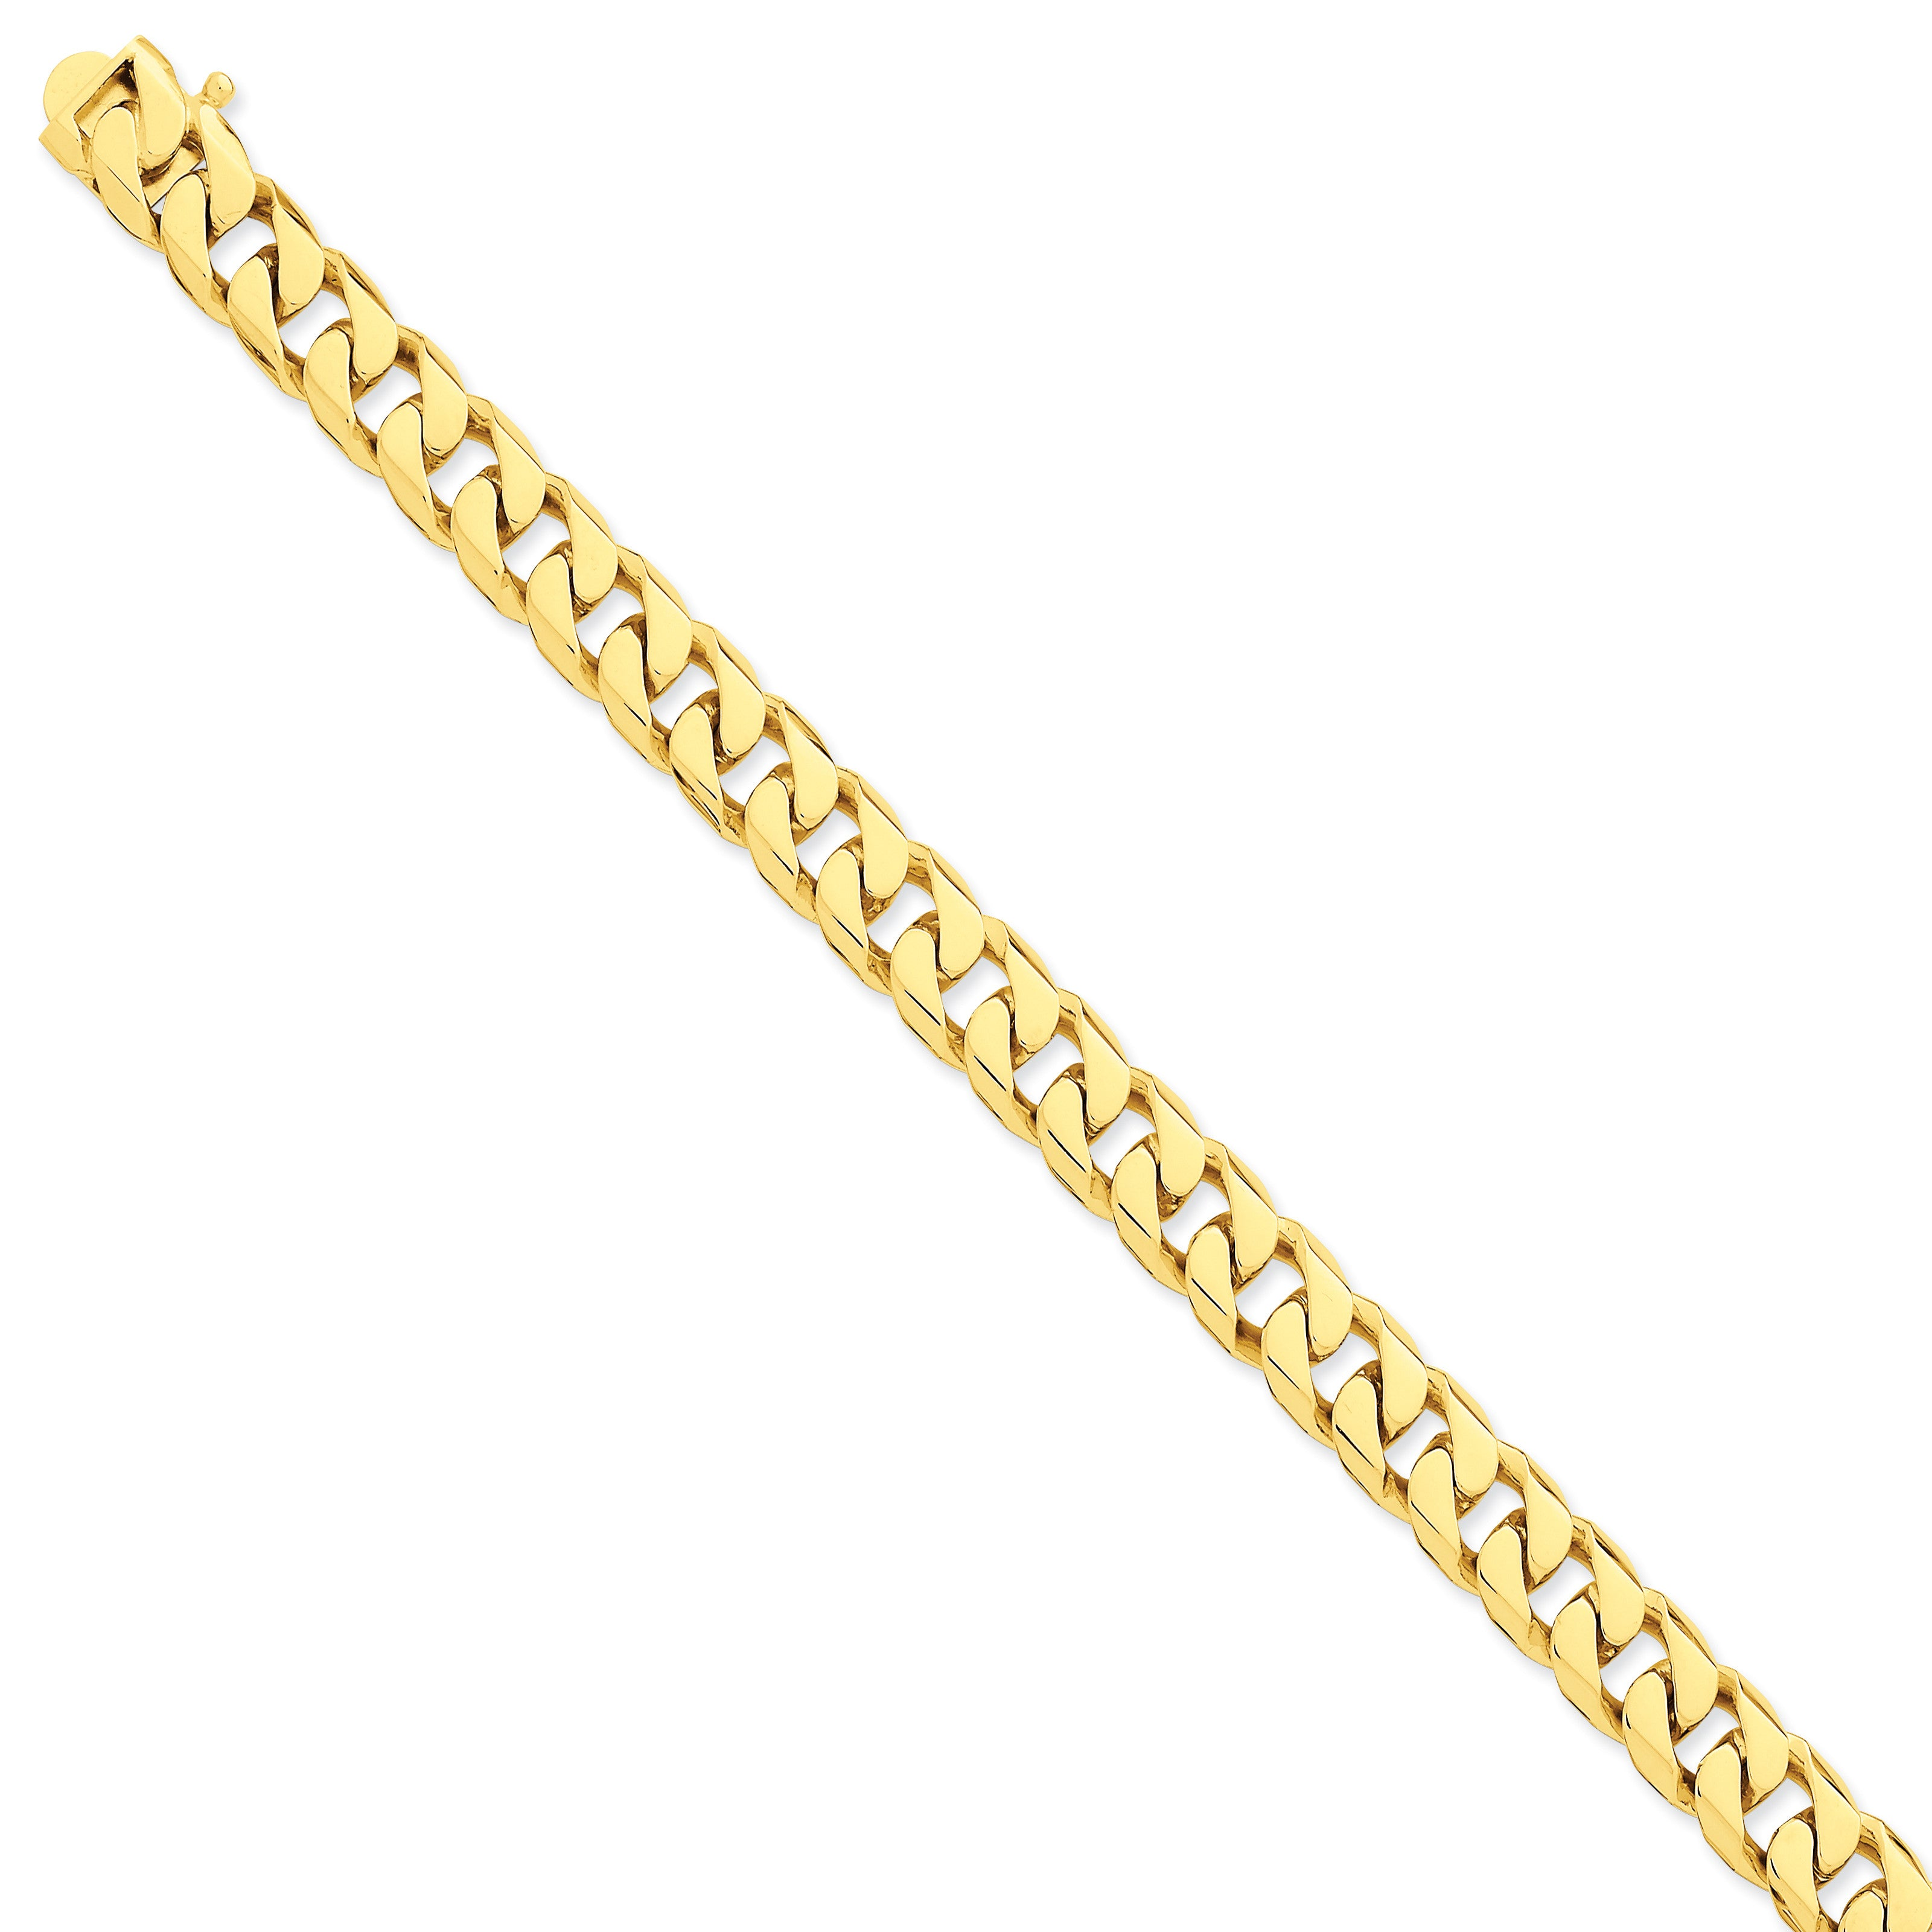 14k 9.25mm Hand-polished Flat Beveled Curb Chain LK133 - shirin-diamonds